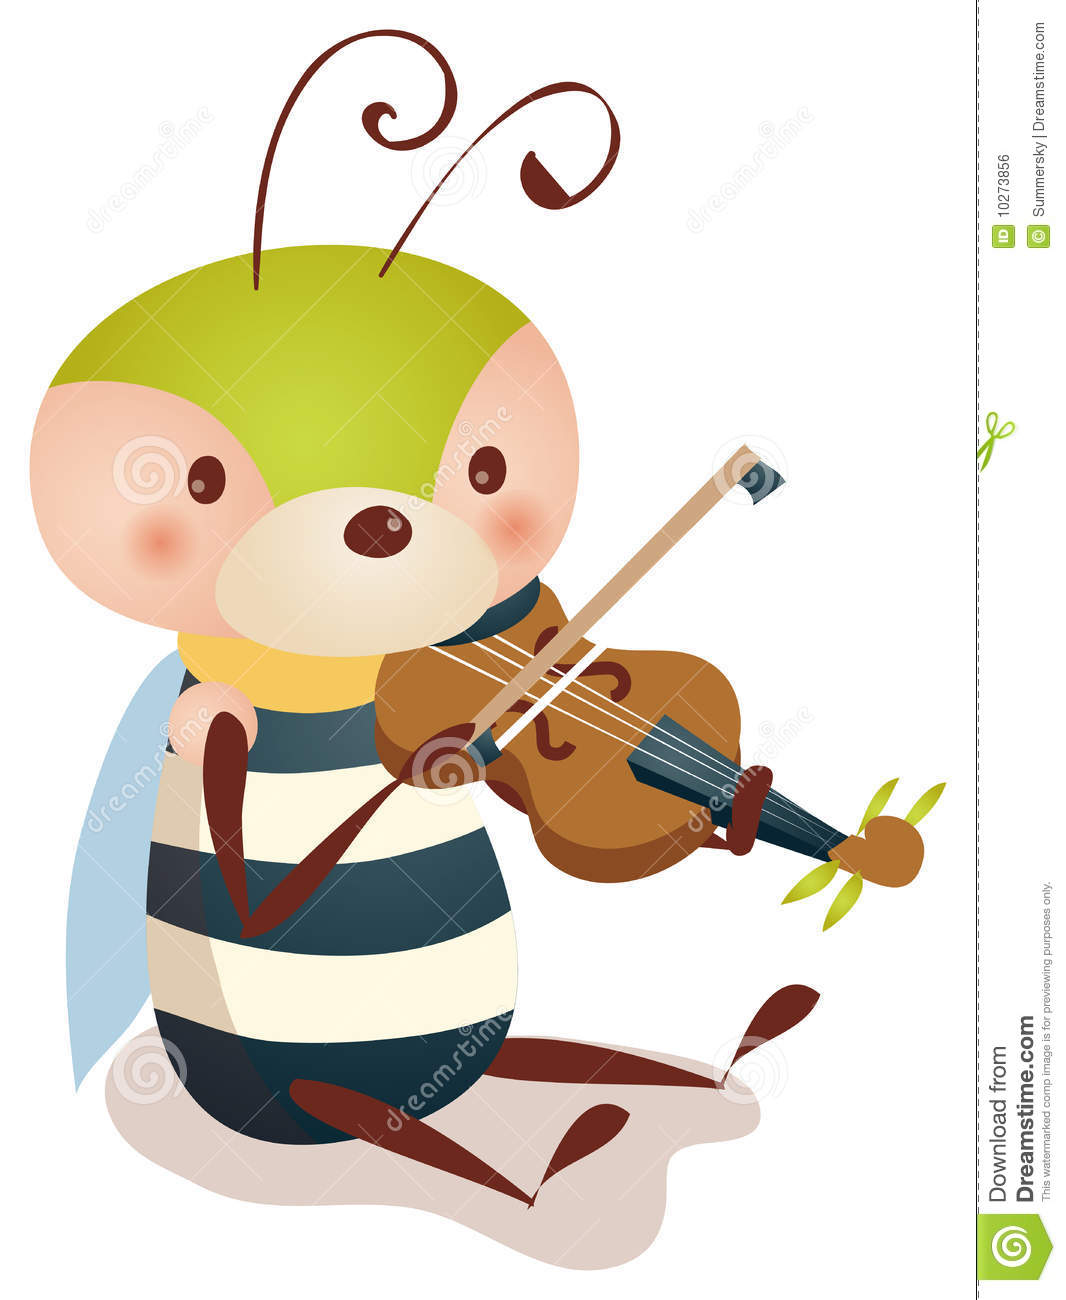 bee playing violin royalty free stock image image 10273856 fiddle clipart black and white fiddle clipart black and white